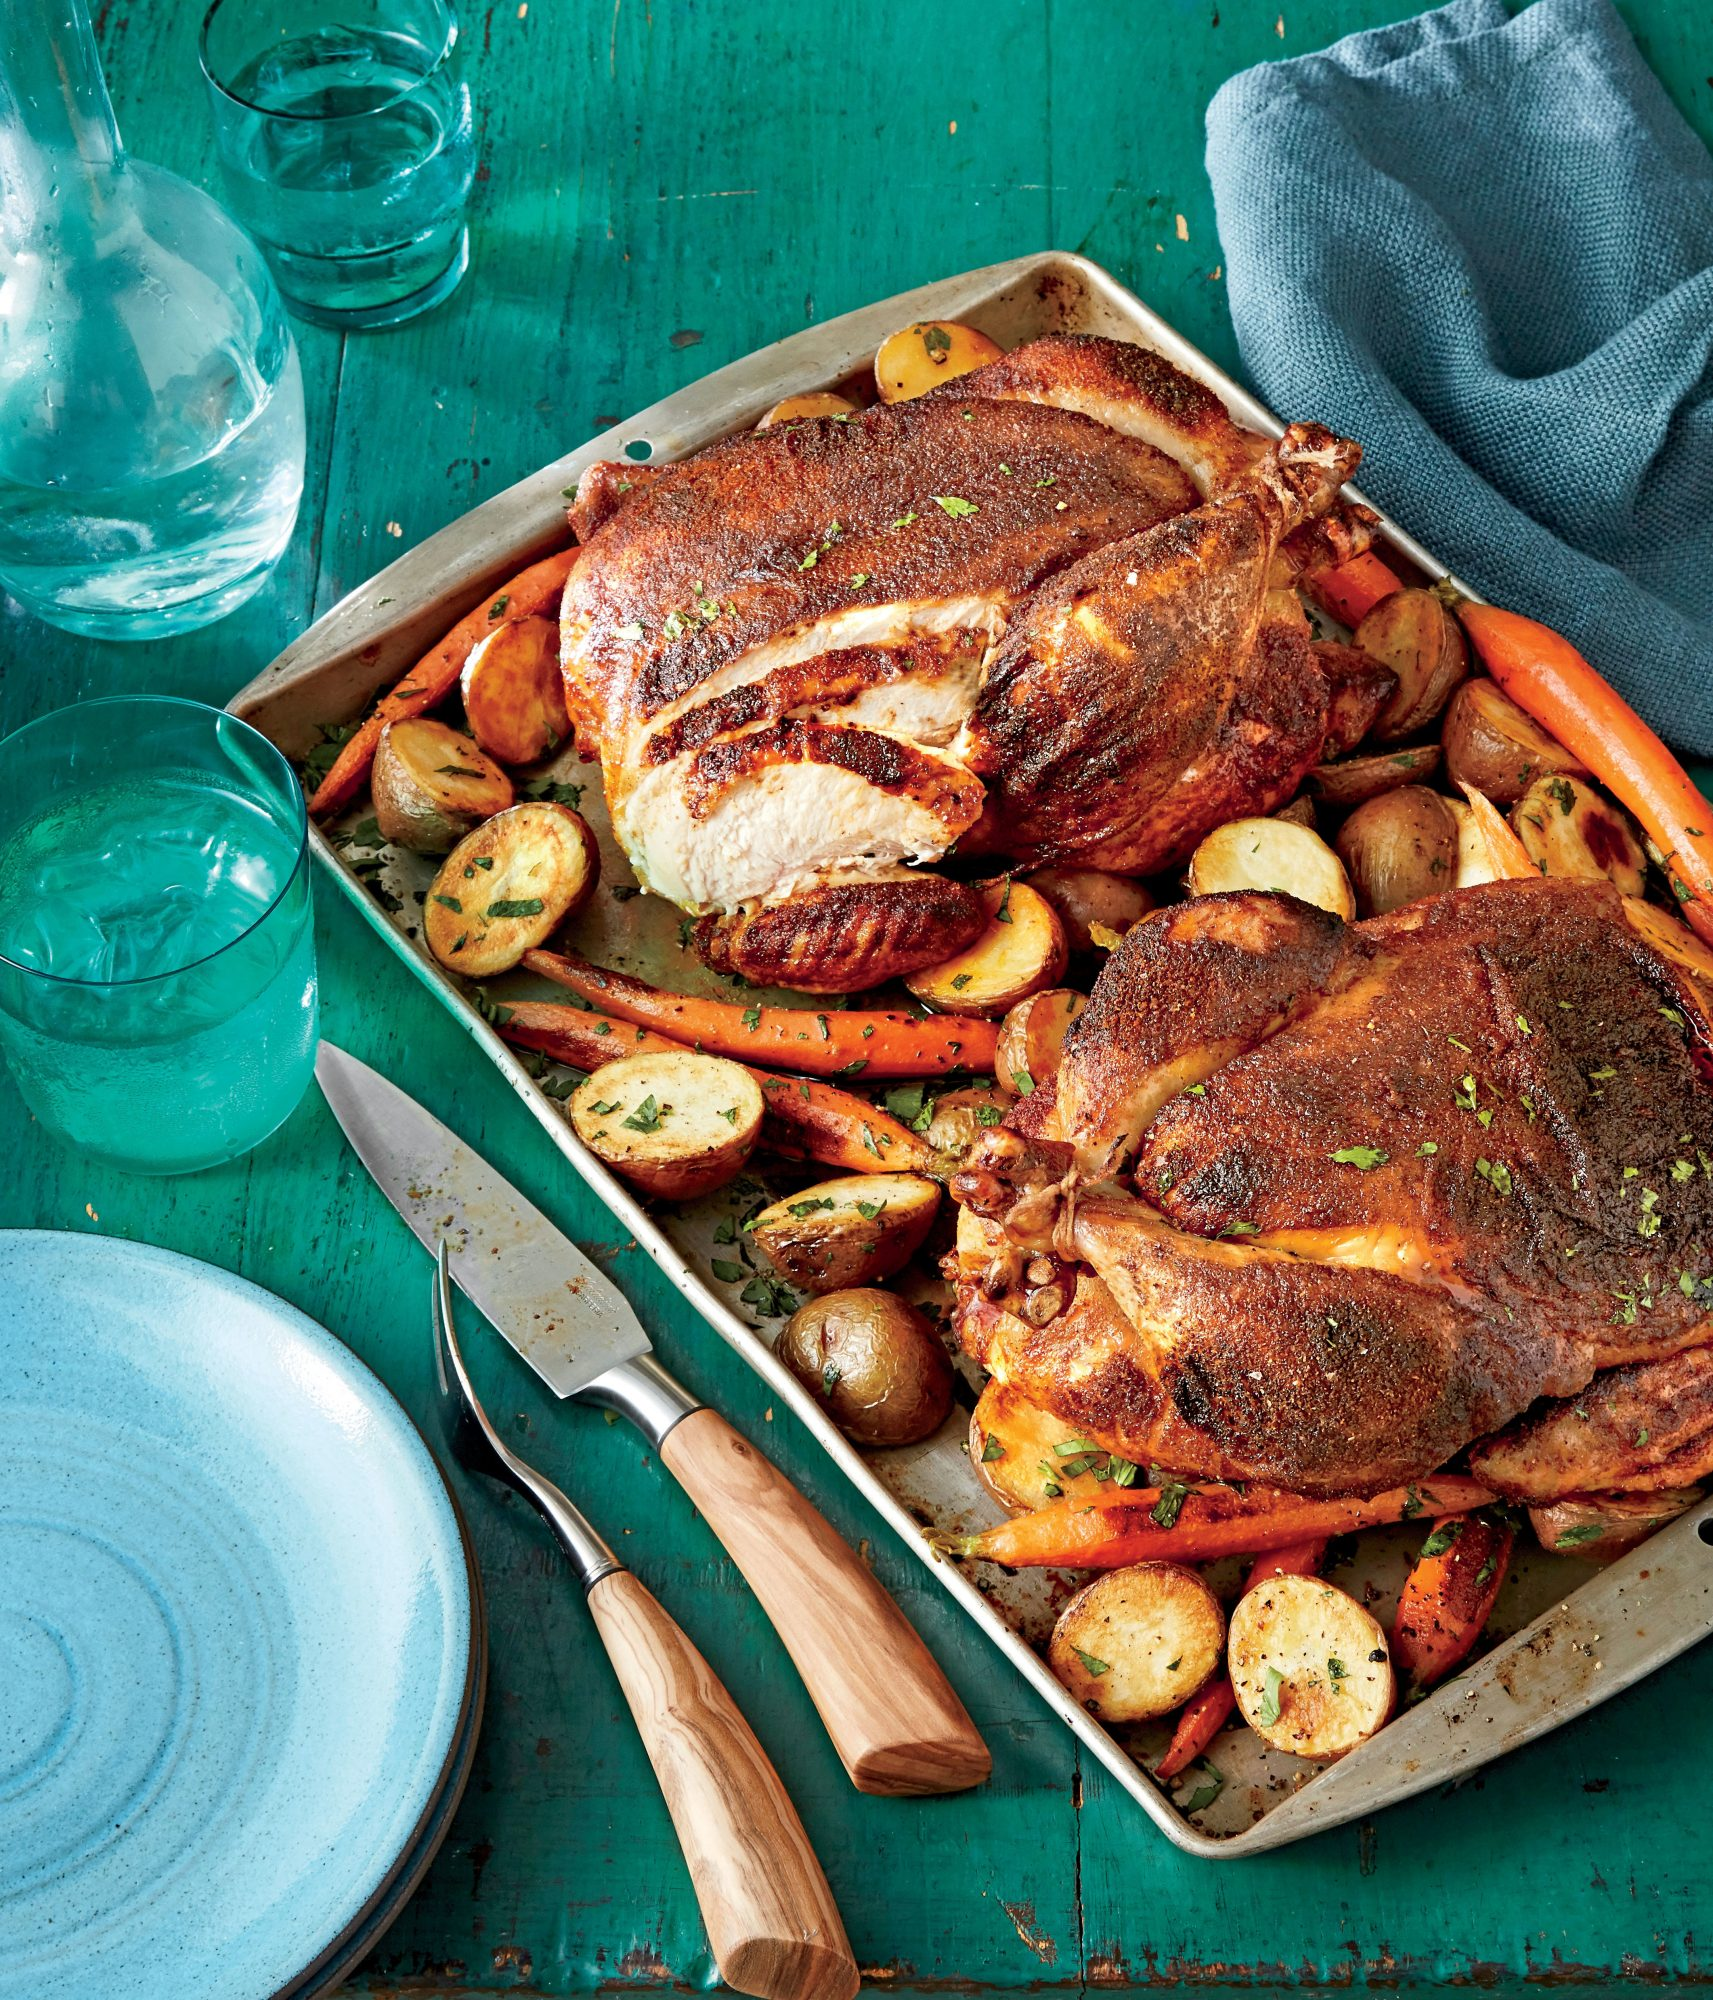 Simple Suppers Challenge: BBQ Rub Roasted Chickens with Potatoes and Carrots